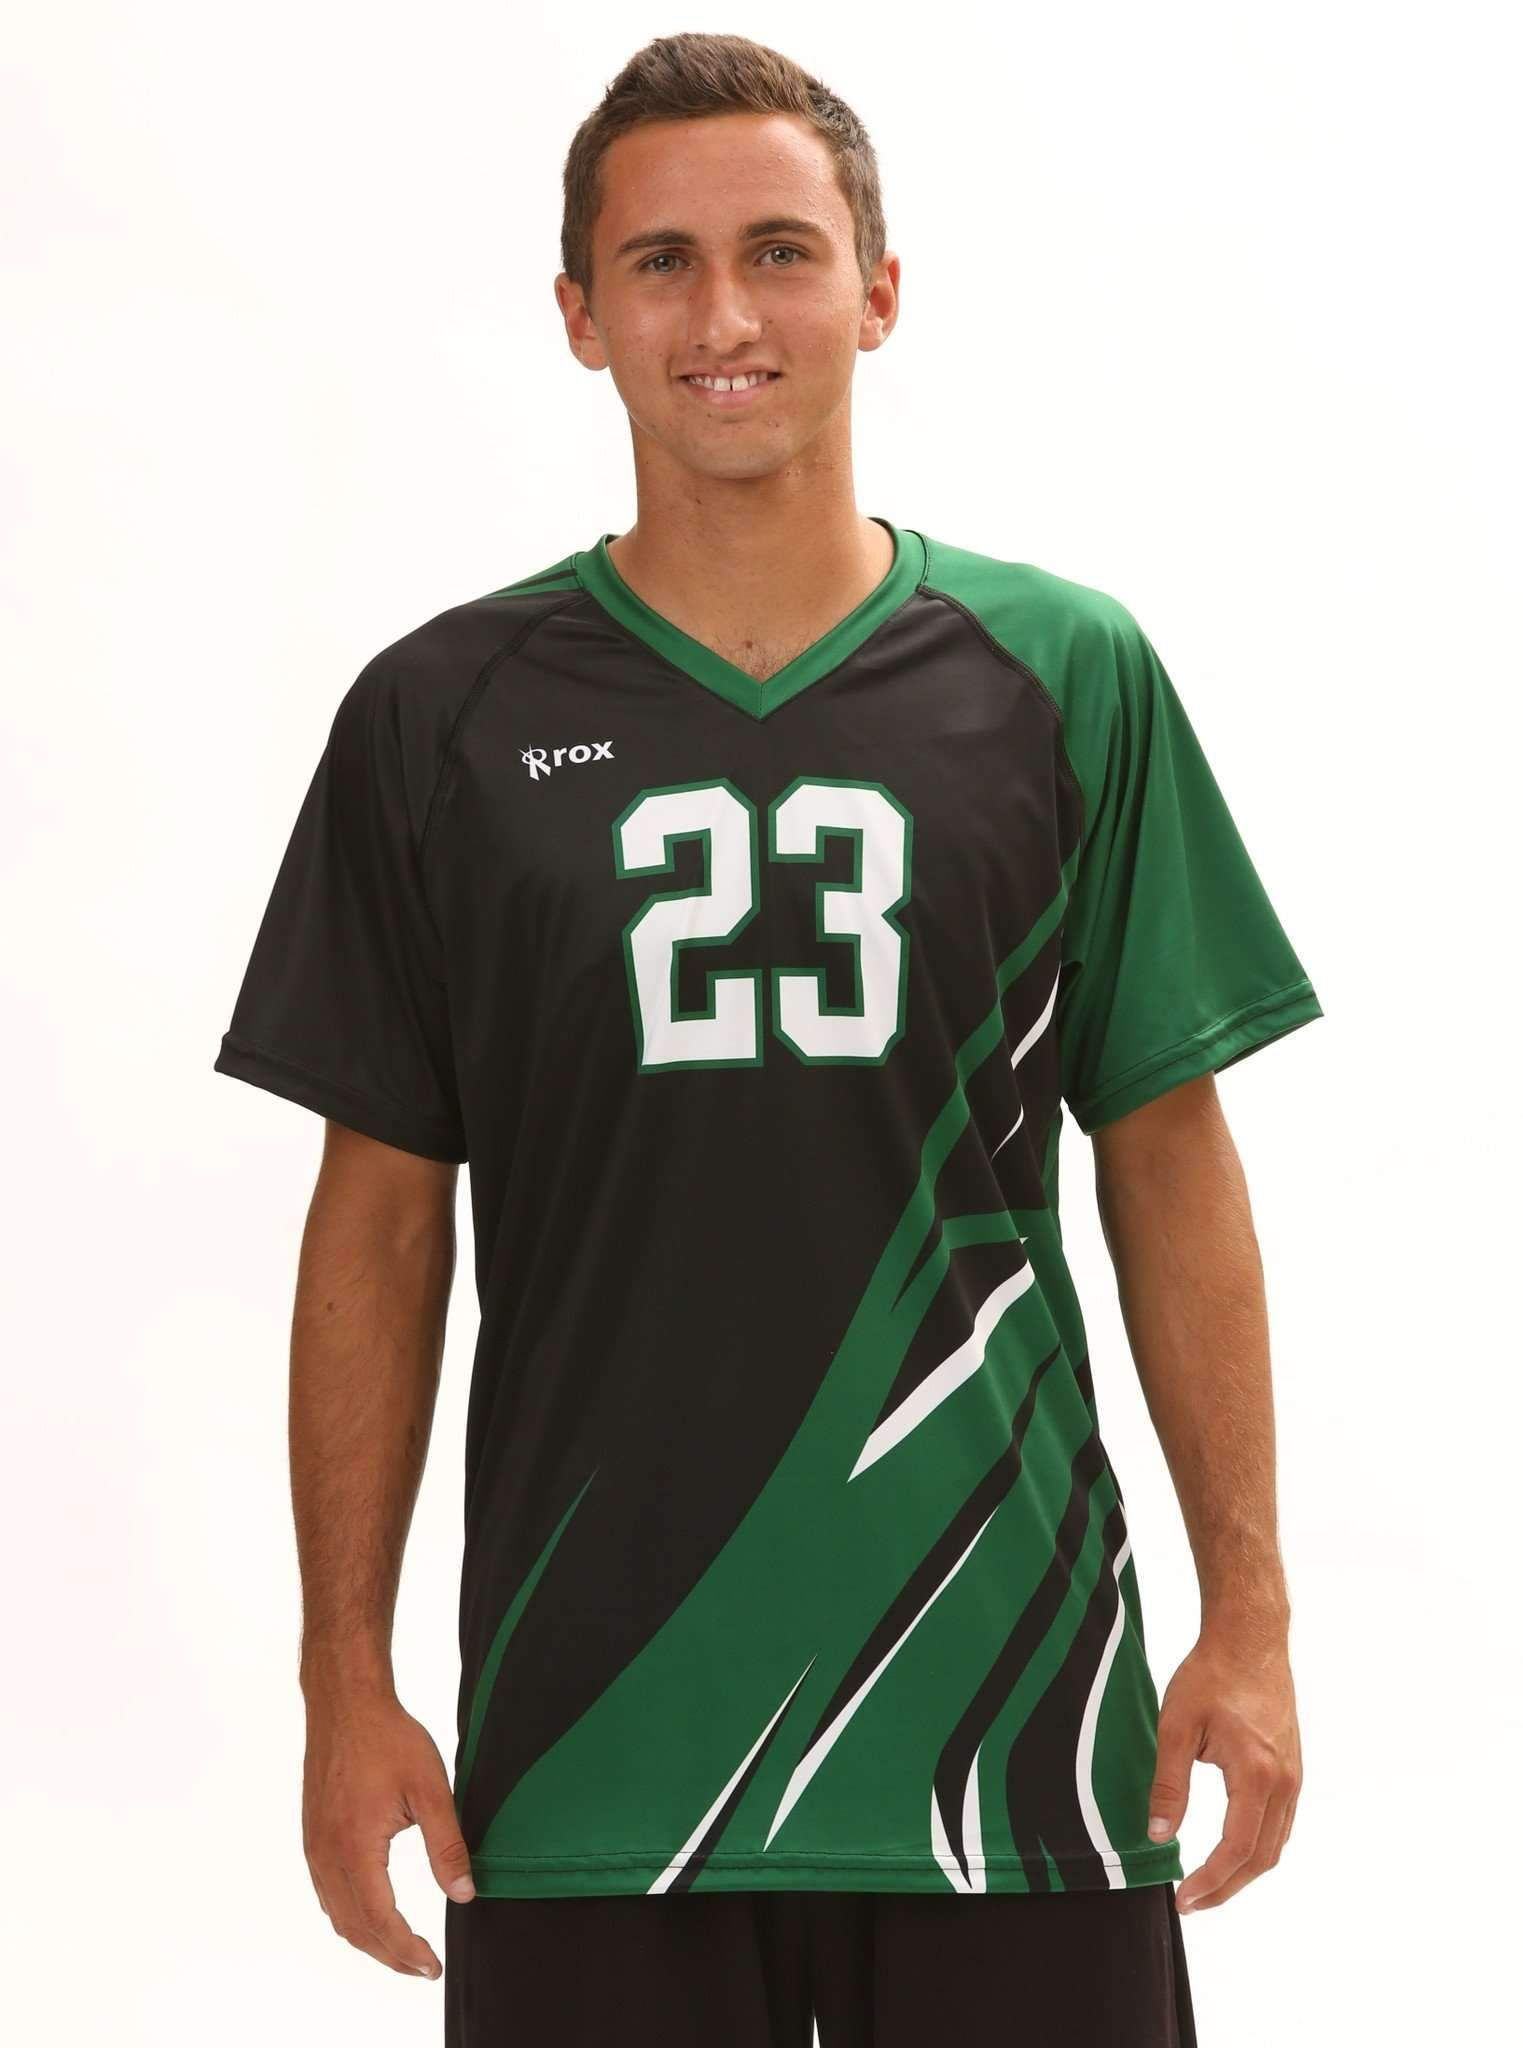 Quake Mens Sublimated Uniform Volleyball Uniforms Design Volleyball Uniforms Logo Number